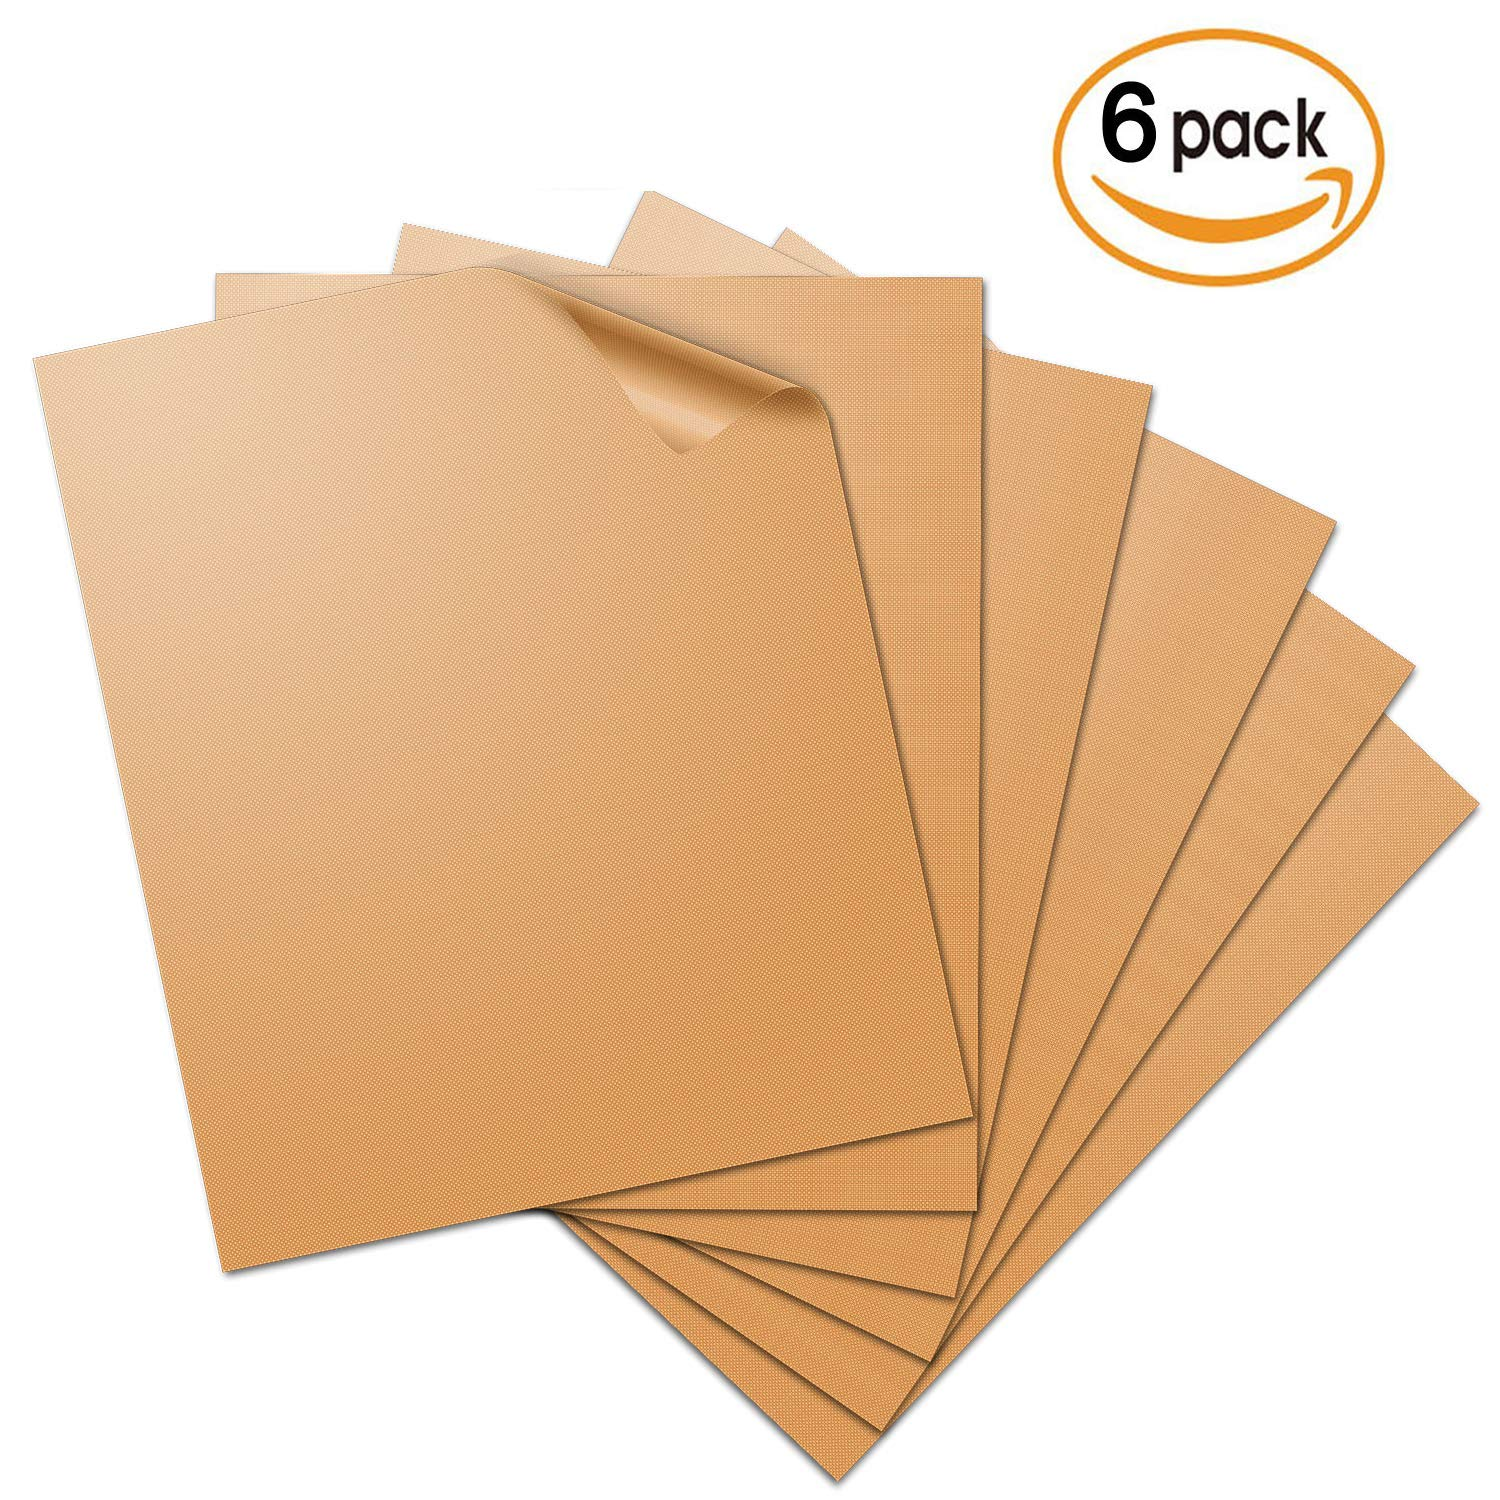 Aquablessing Copper Grill Mat 6 Set 15.75x13''| Non-Stick, Durable, Washable & PFOA Free | For Baking, Grilling, BBQ, Charcoal, Electric, Gas, Oven, Outdoors, Meat, Veggies, Pizza, Cookies & More sdk2017006